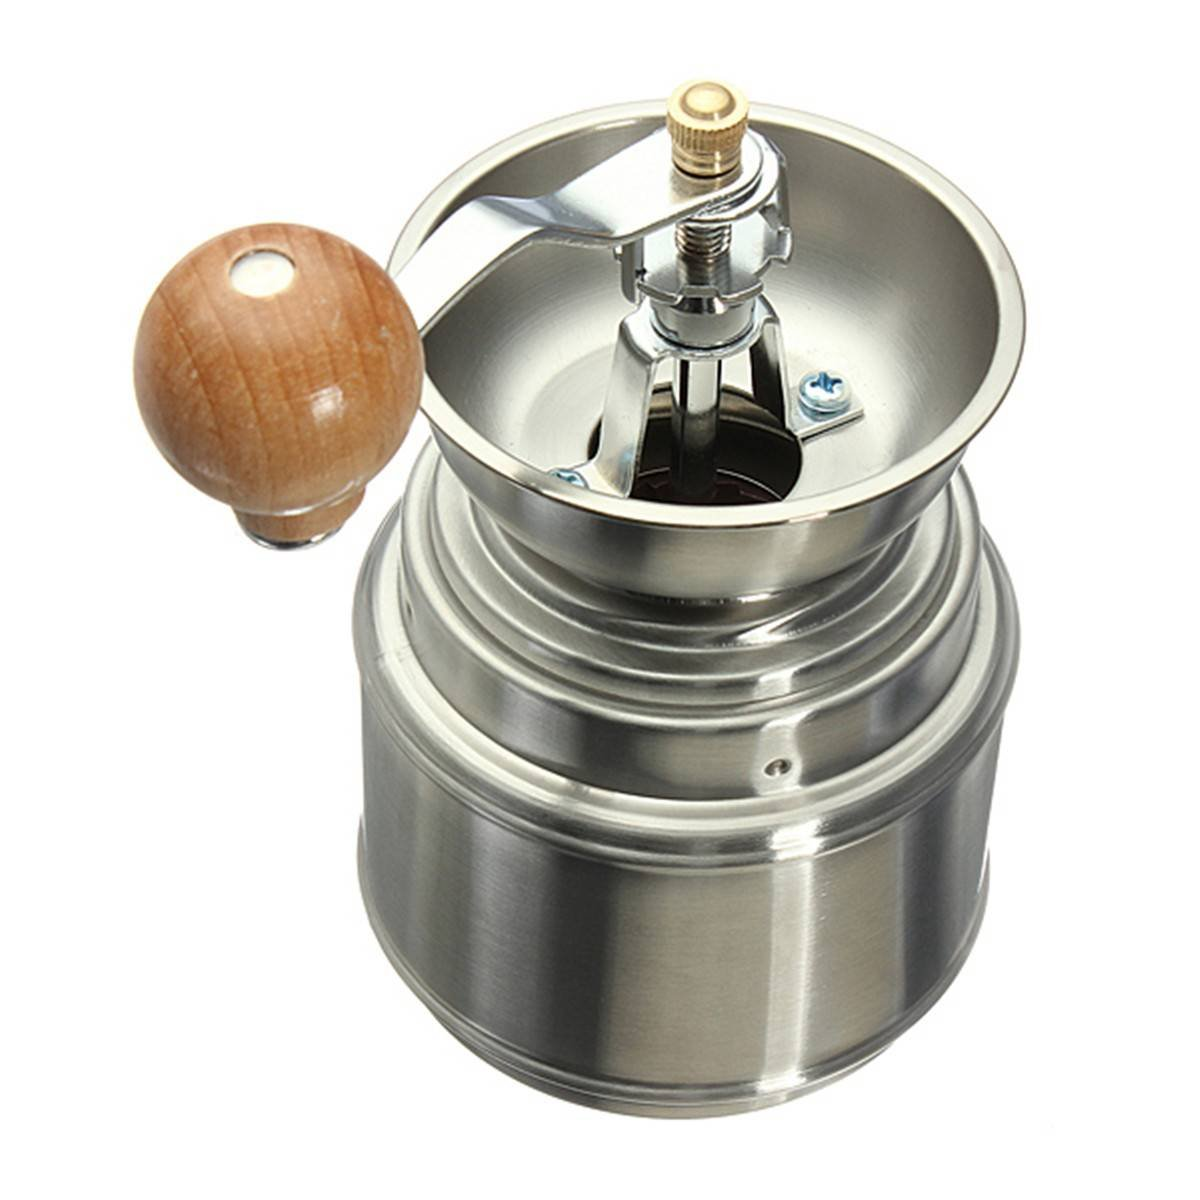 Roellinger manual pepper mill with handle in wood chocolate.